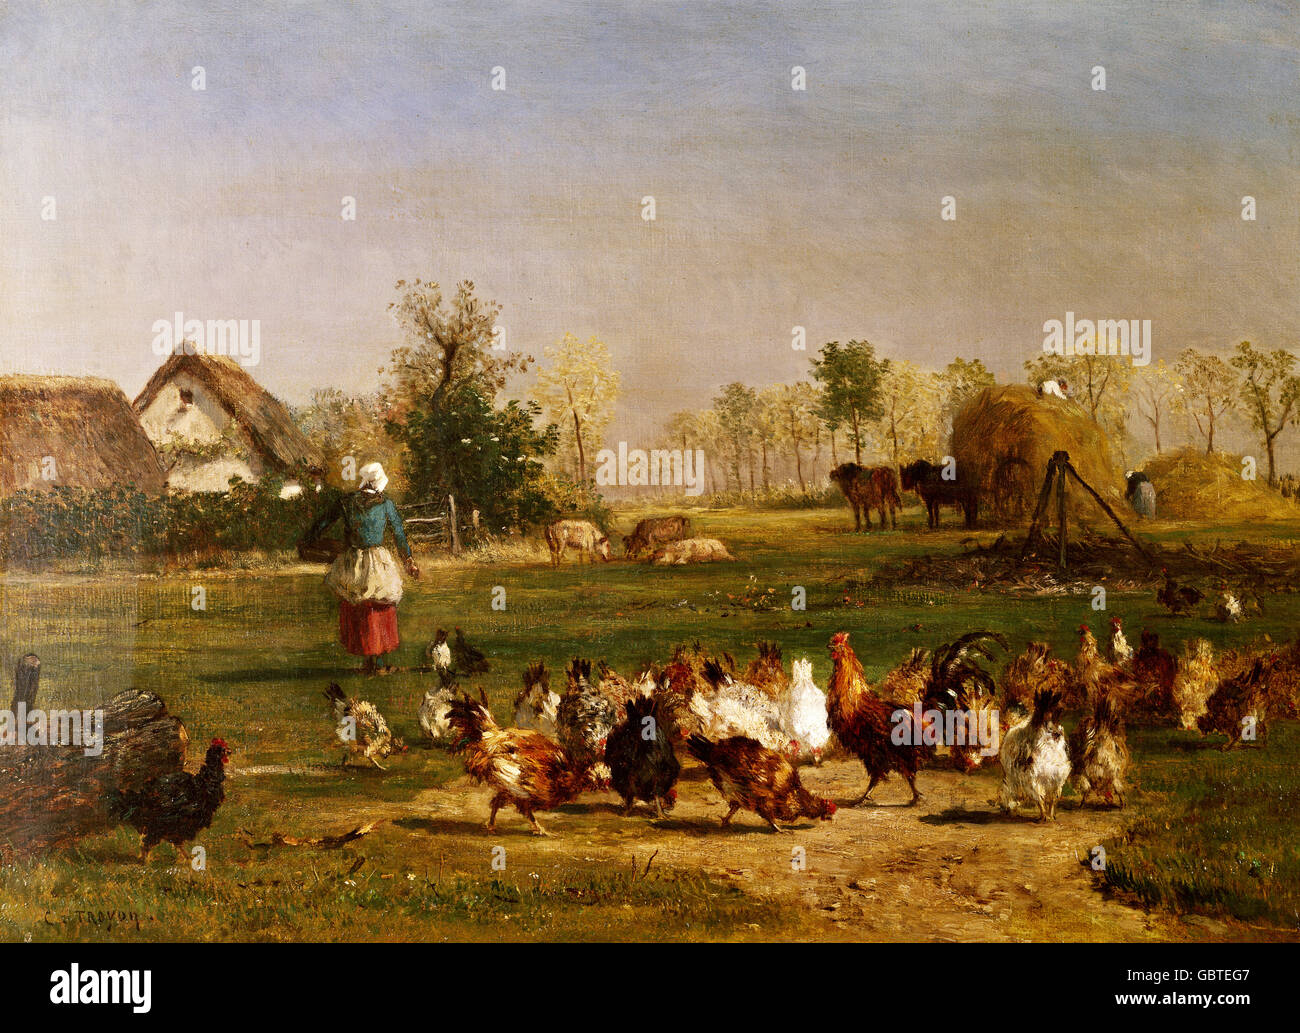 fine arts, Troyon, Constant (1810 - 1865), painting, 'Farmyard With Chickens', Musee du Louvre, Paris, - Stock Image